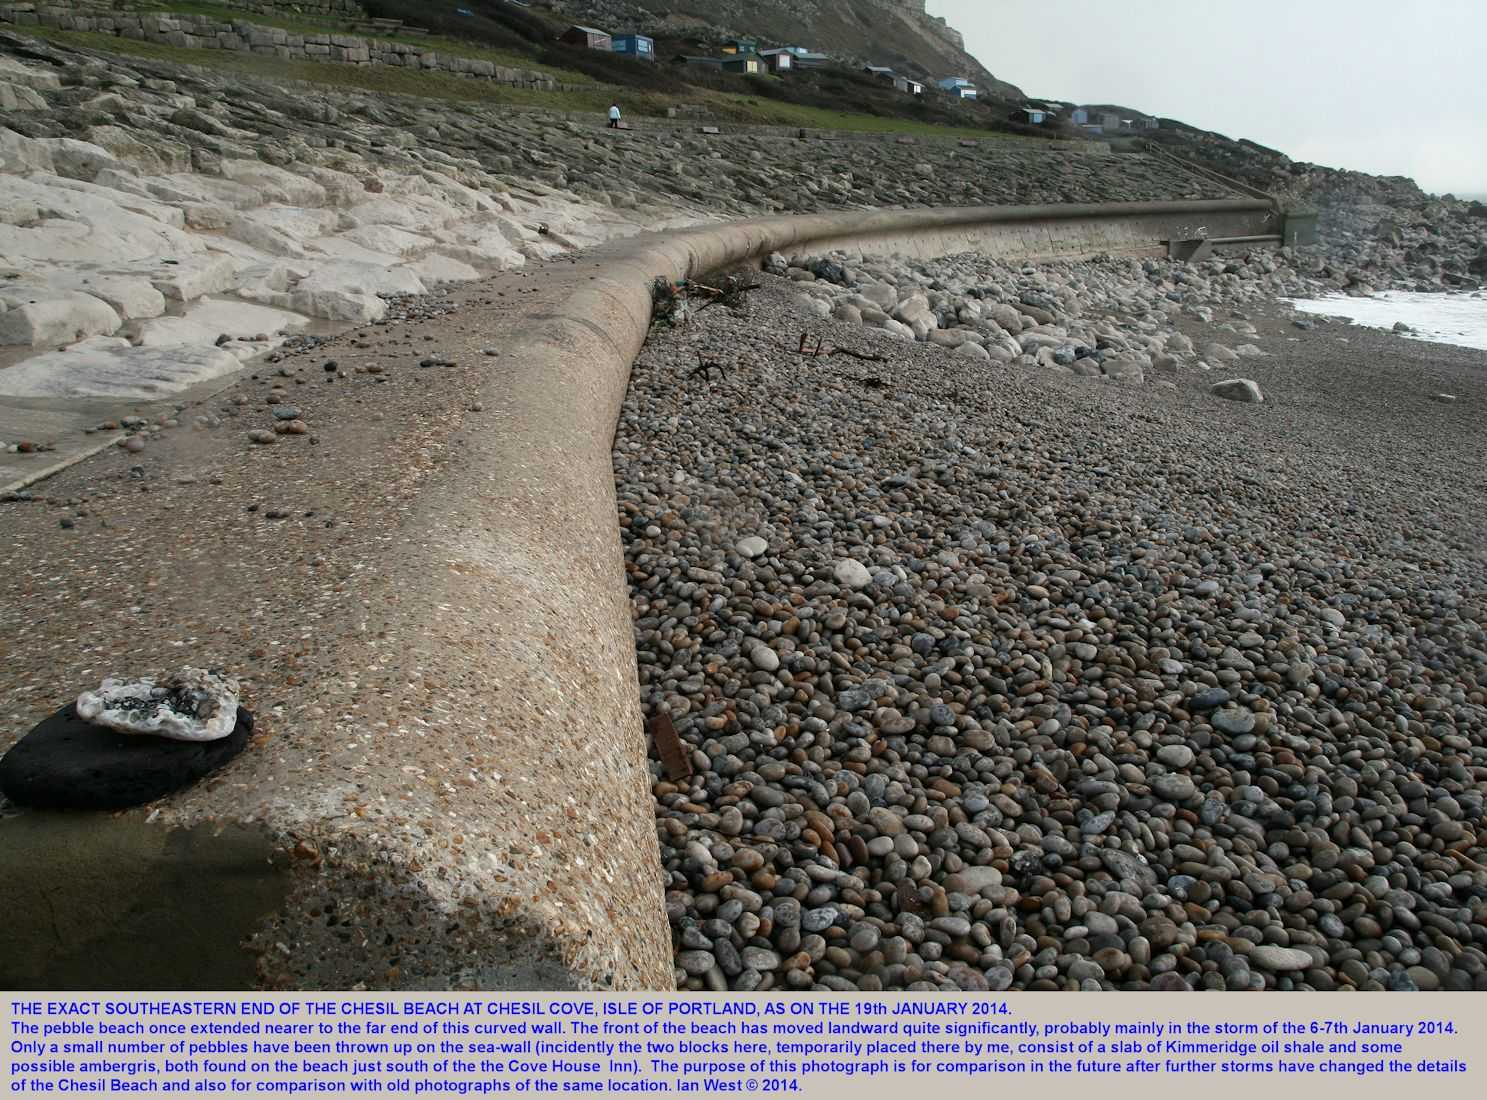 The Portland end of he Chesil Beach on the 19th January 2014, showing the extent of landward retreat